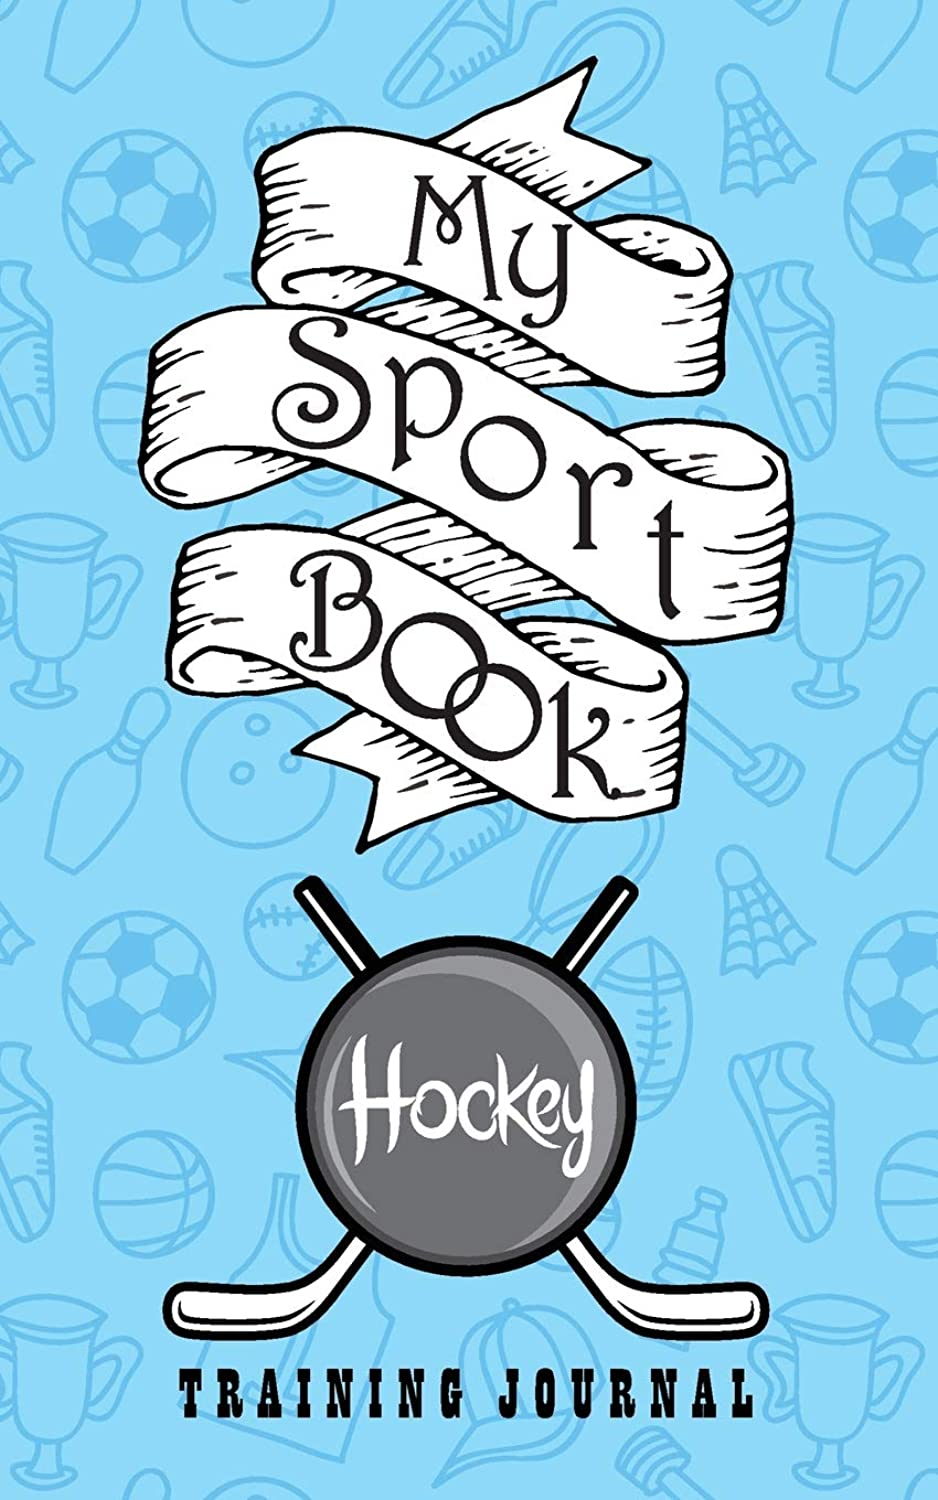 My sport book - Hockey training journal: 200 pages with 5